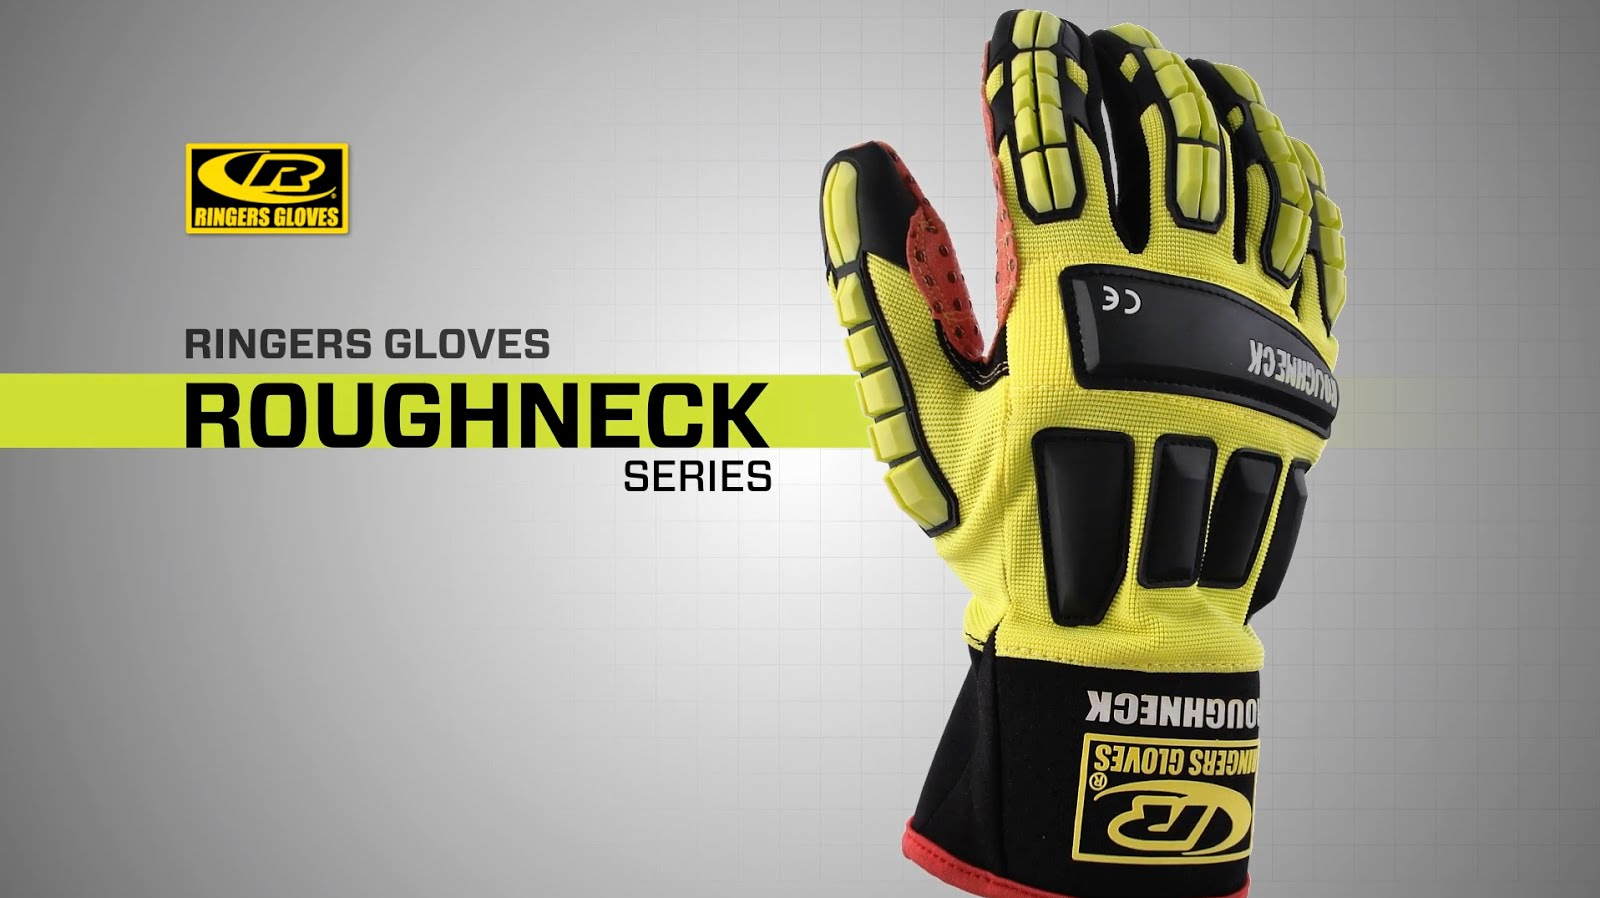 Ringers Gloves Product Video | Axiom